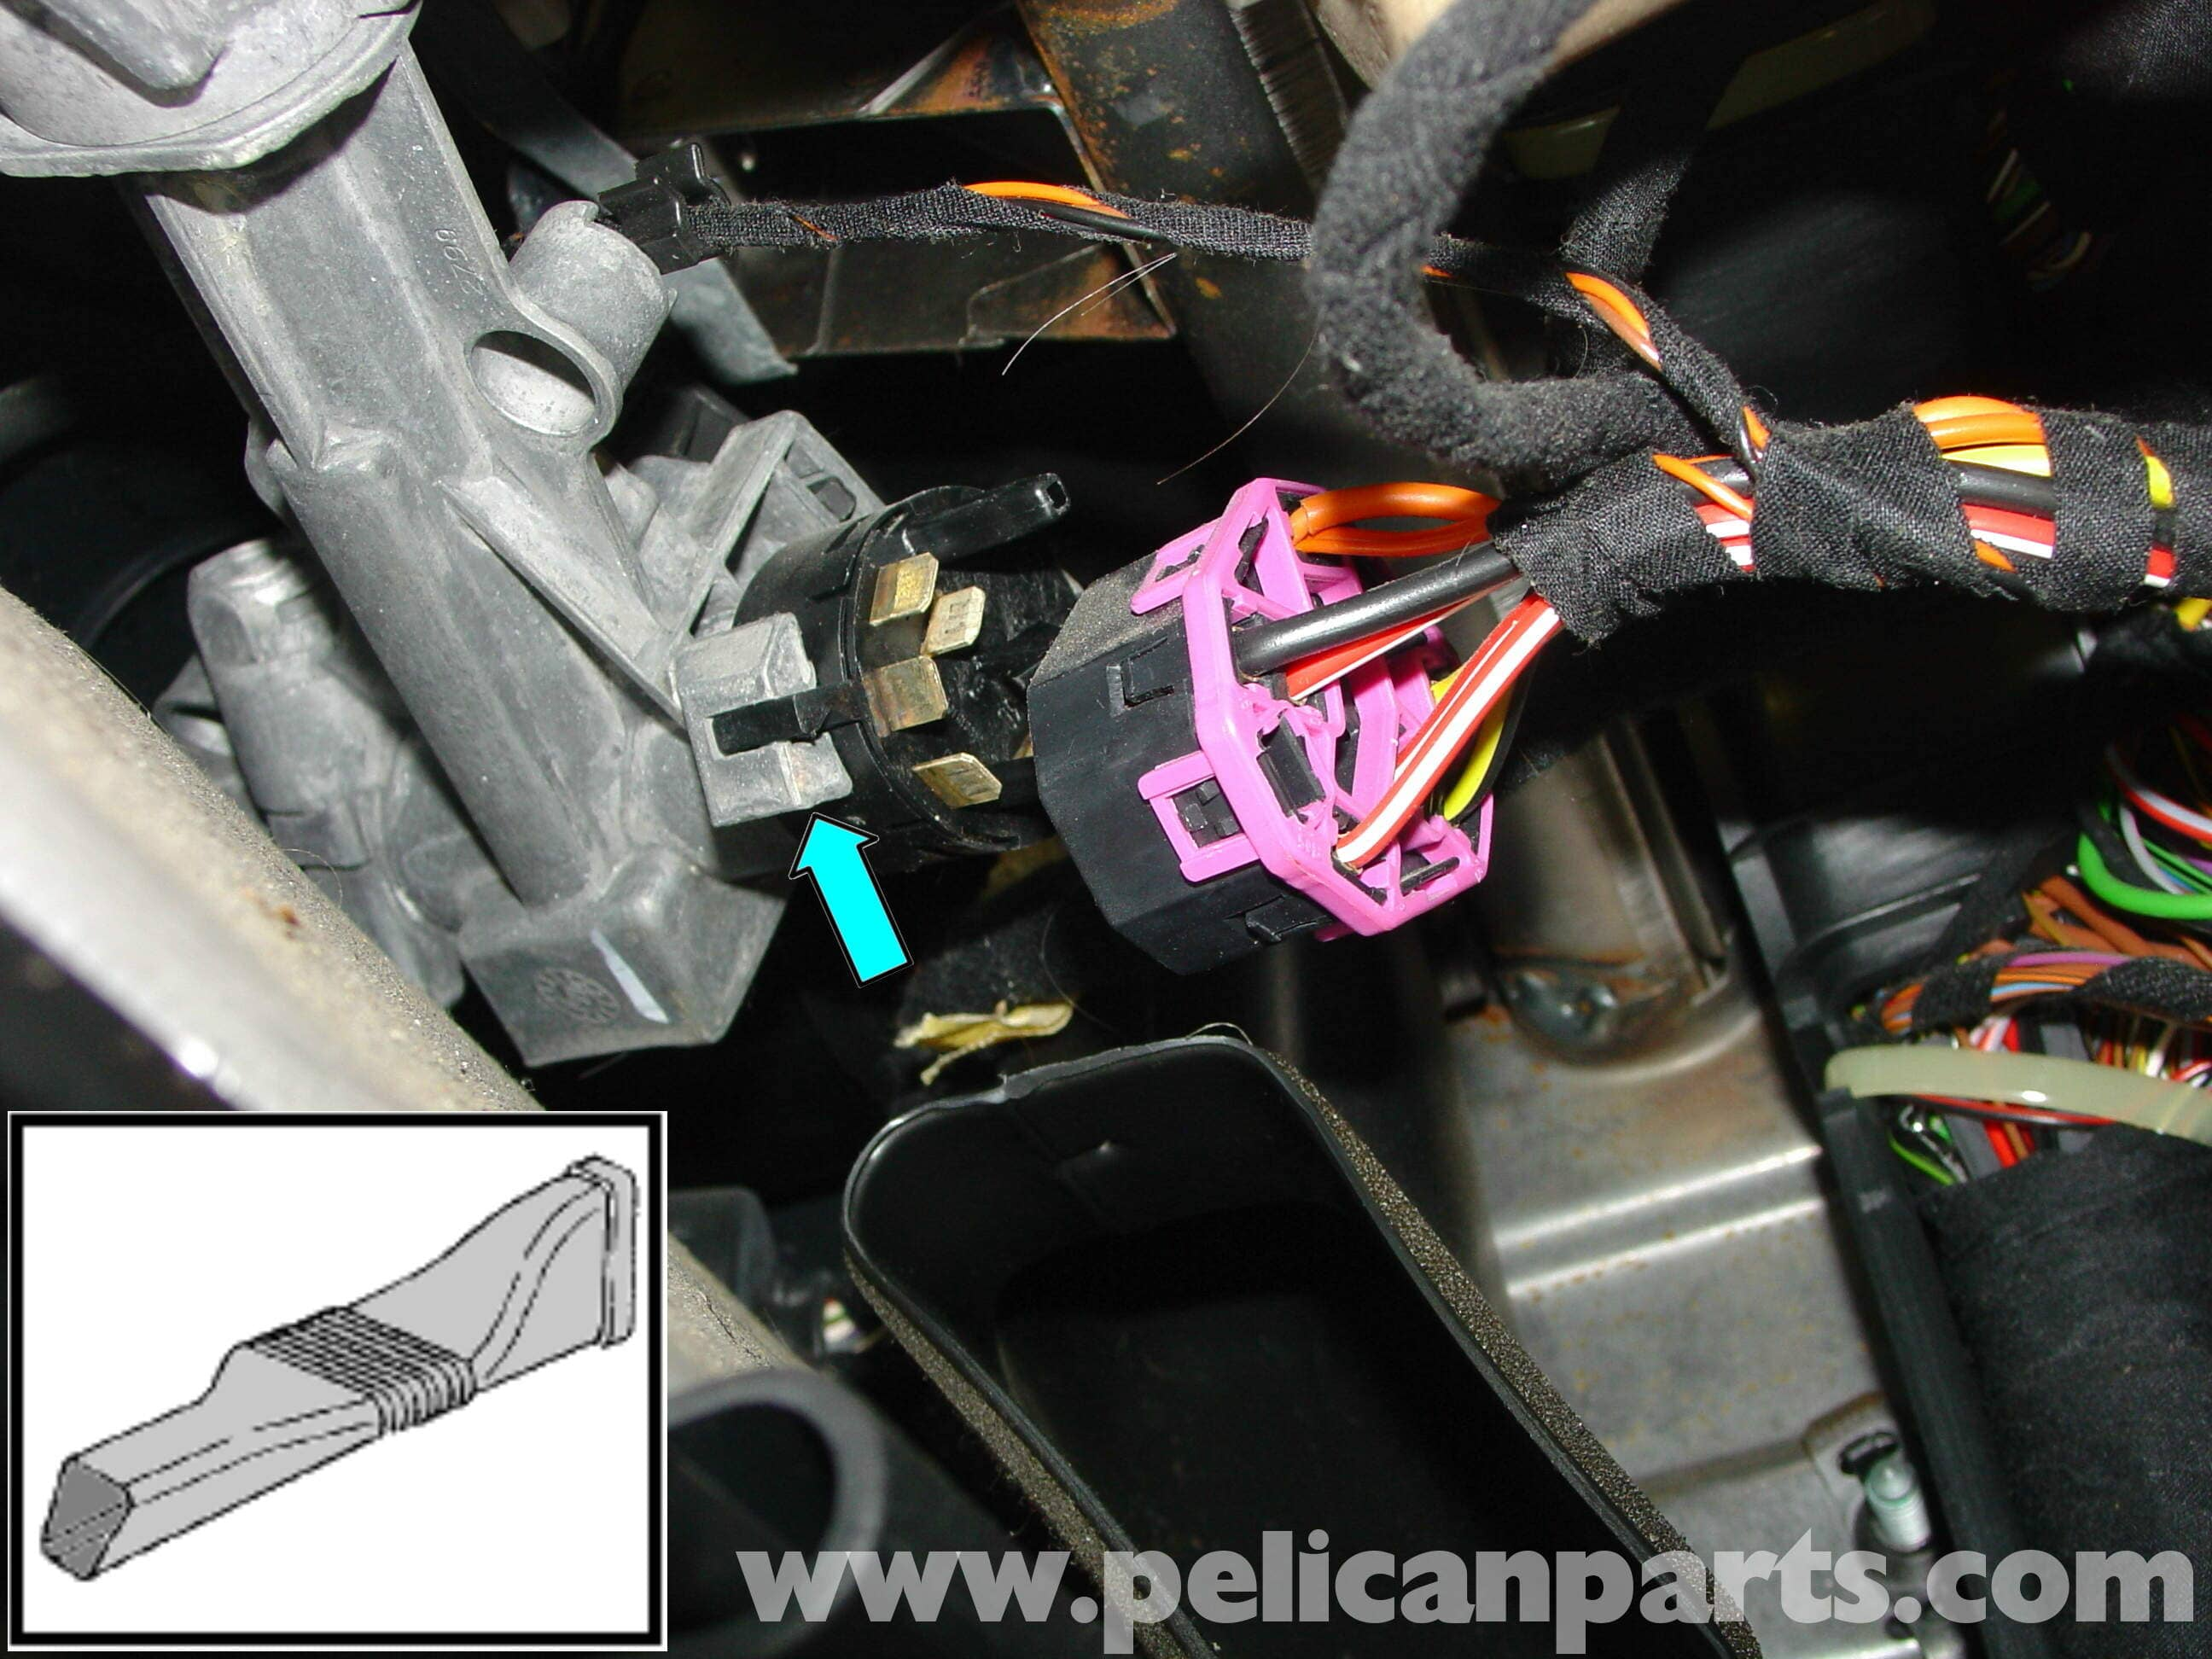 2 position push pull light switch wiring diagram 2002 vw beetle alternator porsche boxster ignition replacement - 986 / 987 (1997-08) pelican parts technical article